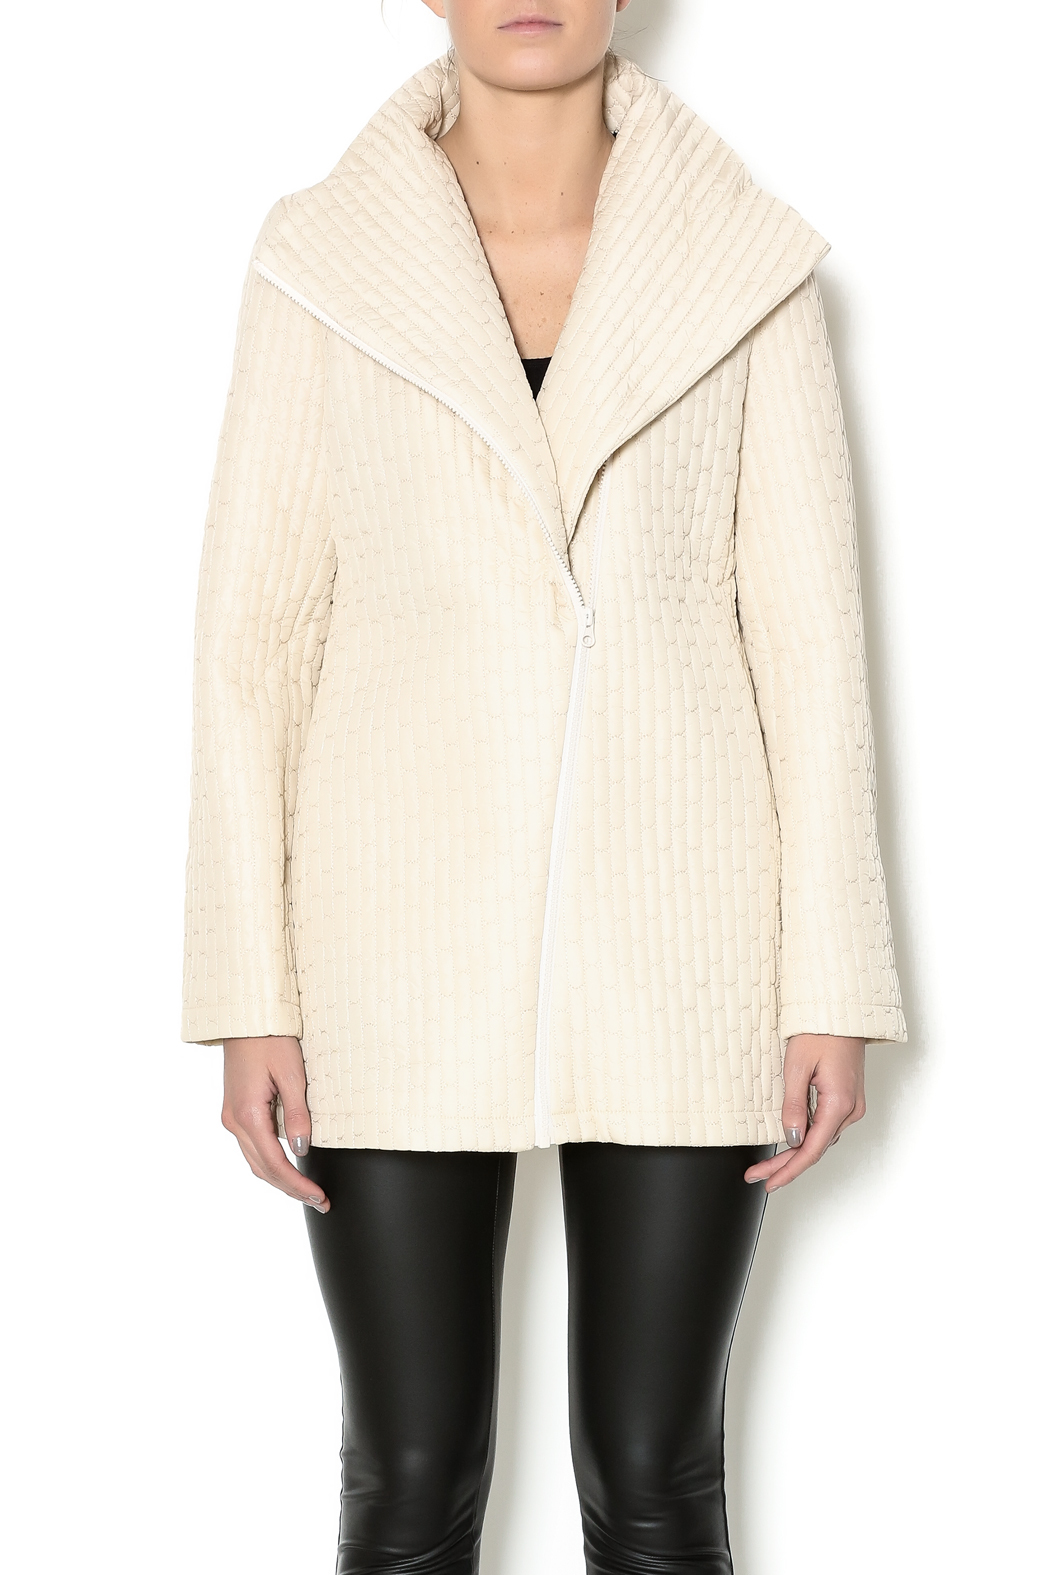 209 West Quilted Cream Jacket - Main Image